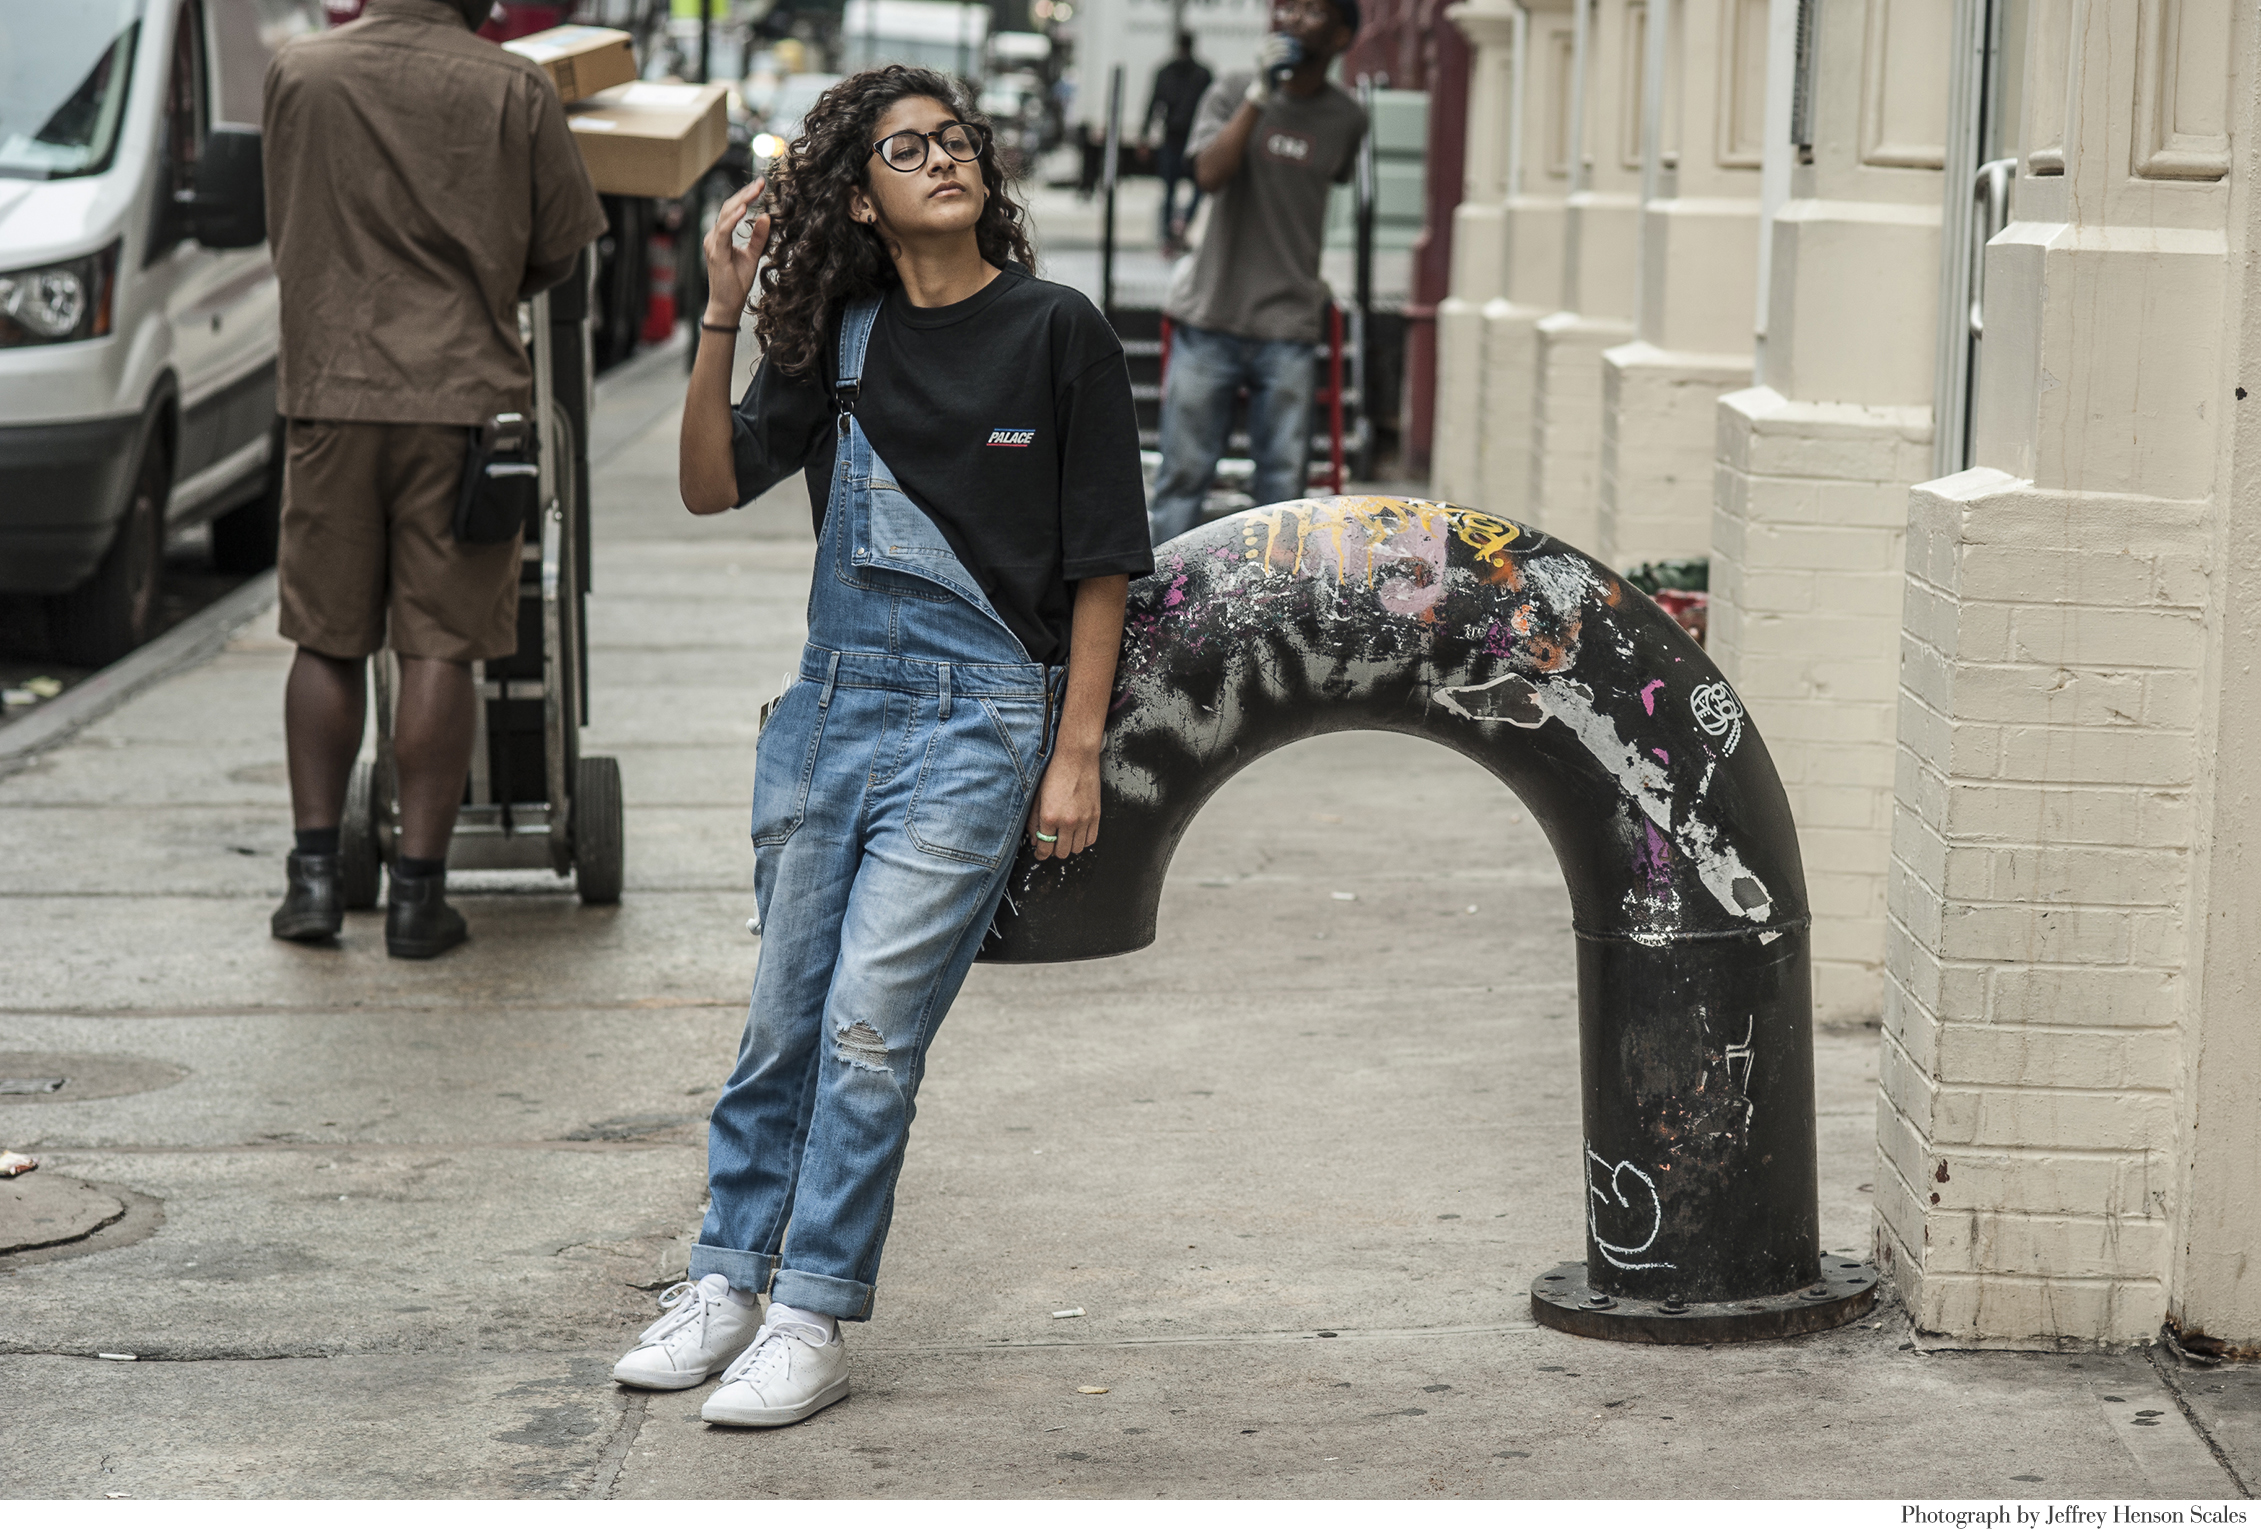 The Look _ New York Times_ Rebecca Pietri Stylist _ Casting _ Jeffery Henson Scale Photgrapher_Eve Lyon Editor_ New Geeks_Article_Nom Core- Youth Fashion_ Supreme_Palace_Vans_Street fashion _ Soho_ Teens_ Daughter_ Shot .JPG